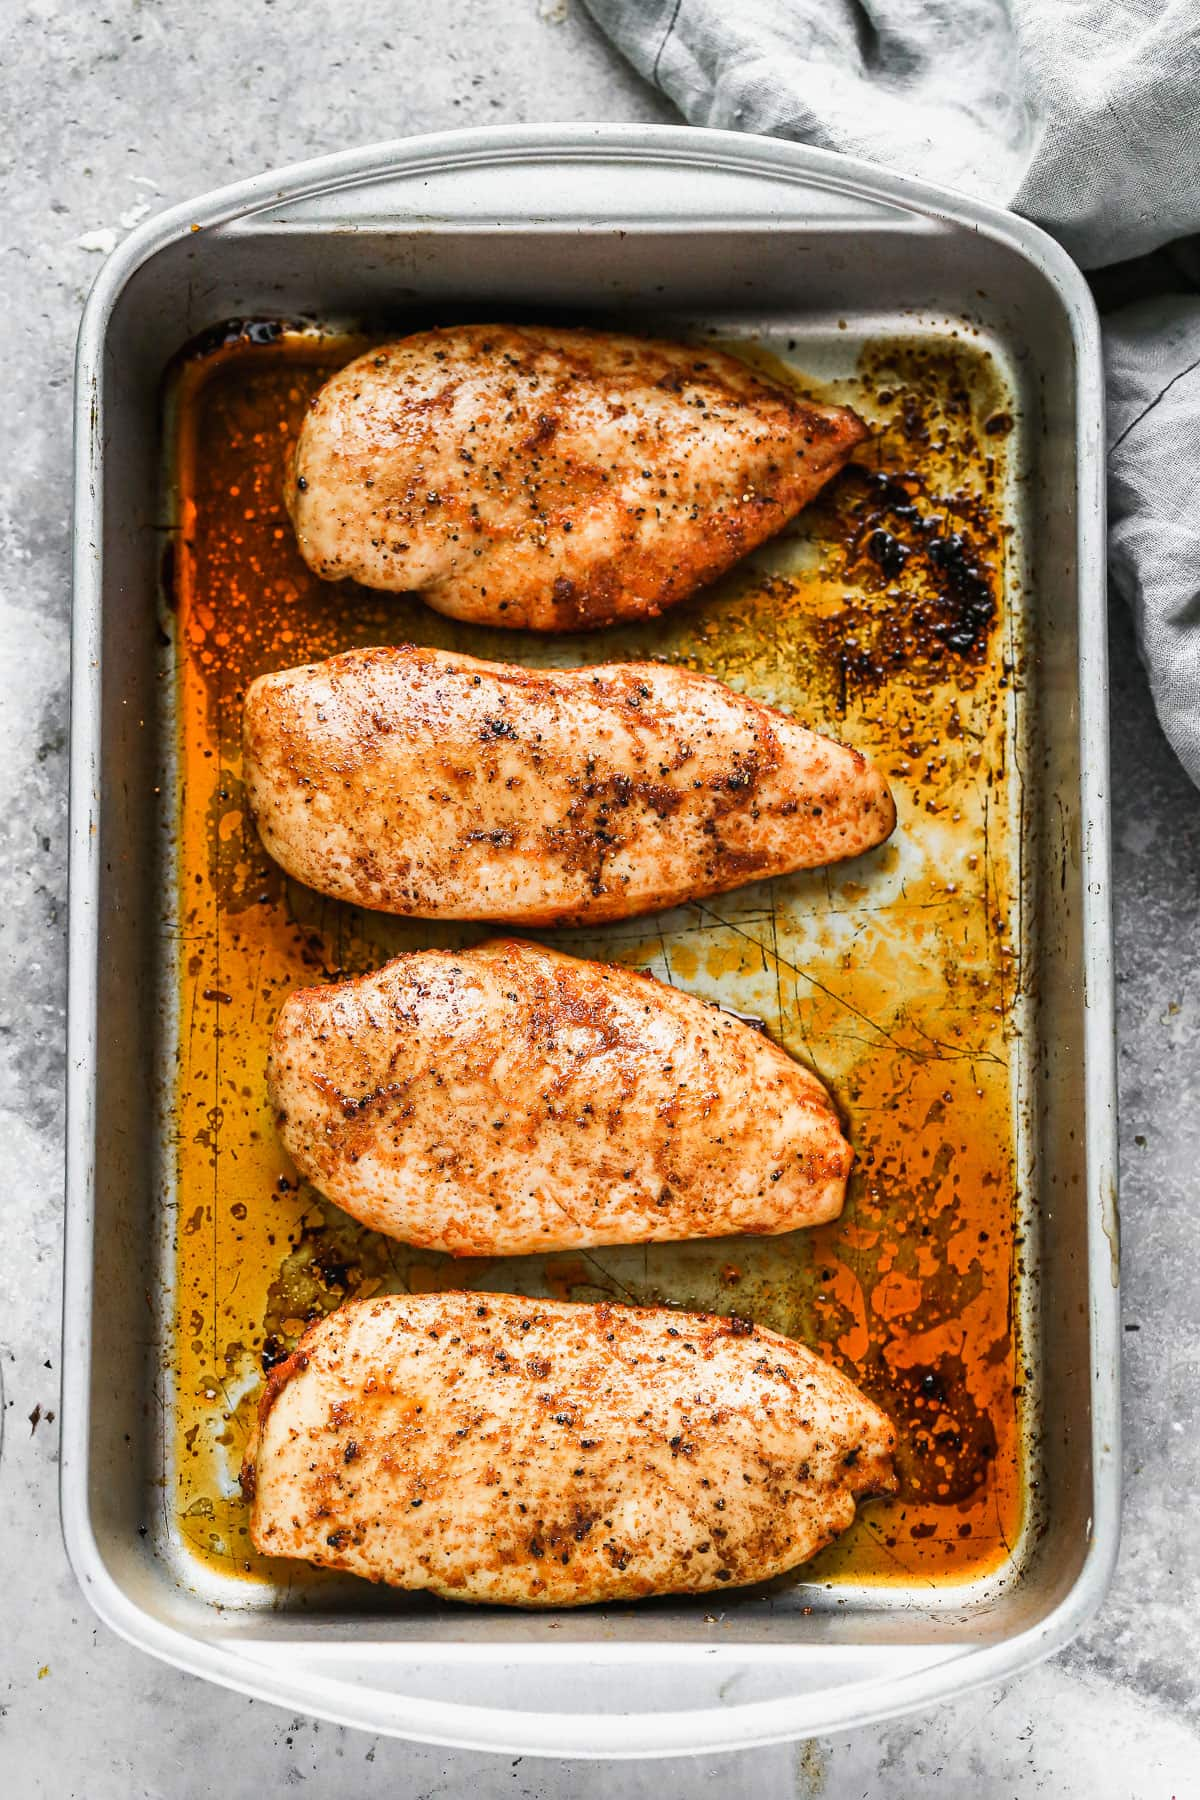 Four oven roasted chicken breasts in a pan